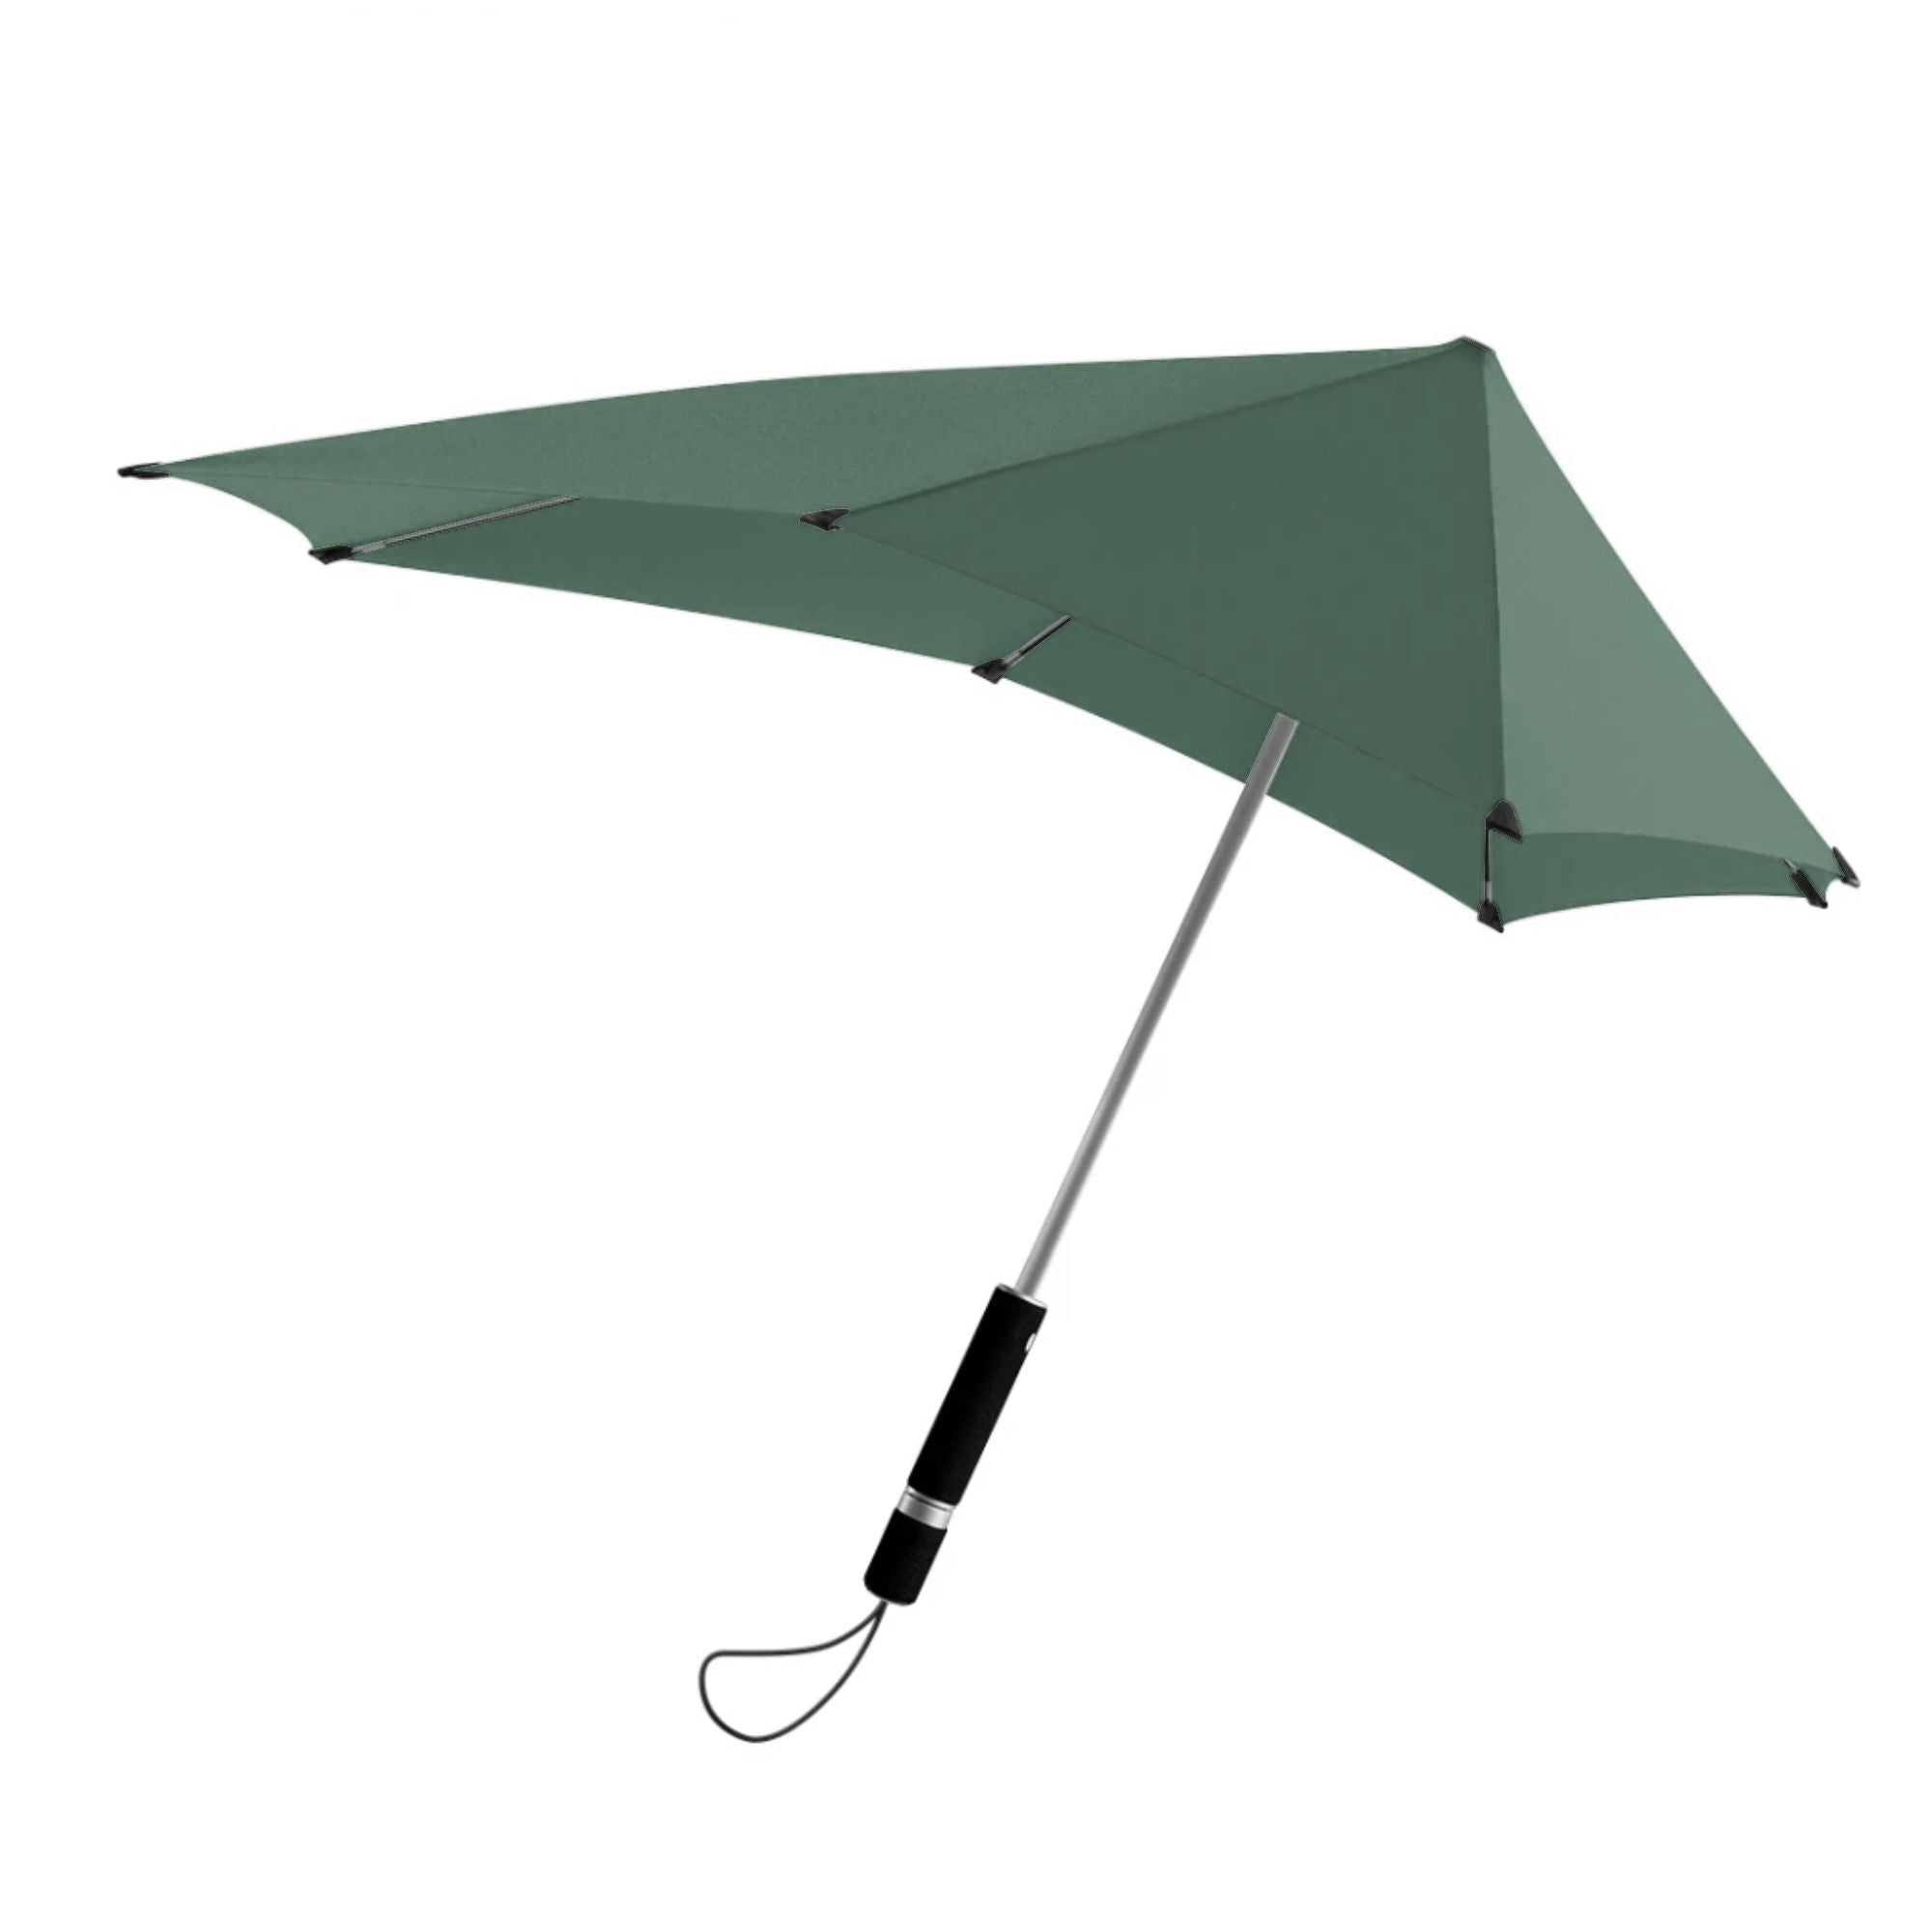 Senz° Original storm umbrella, khaki